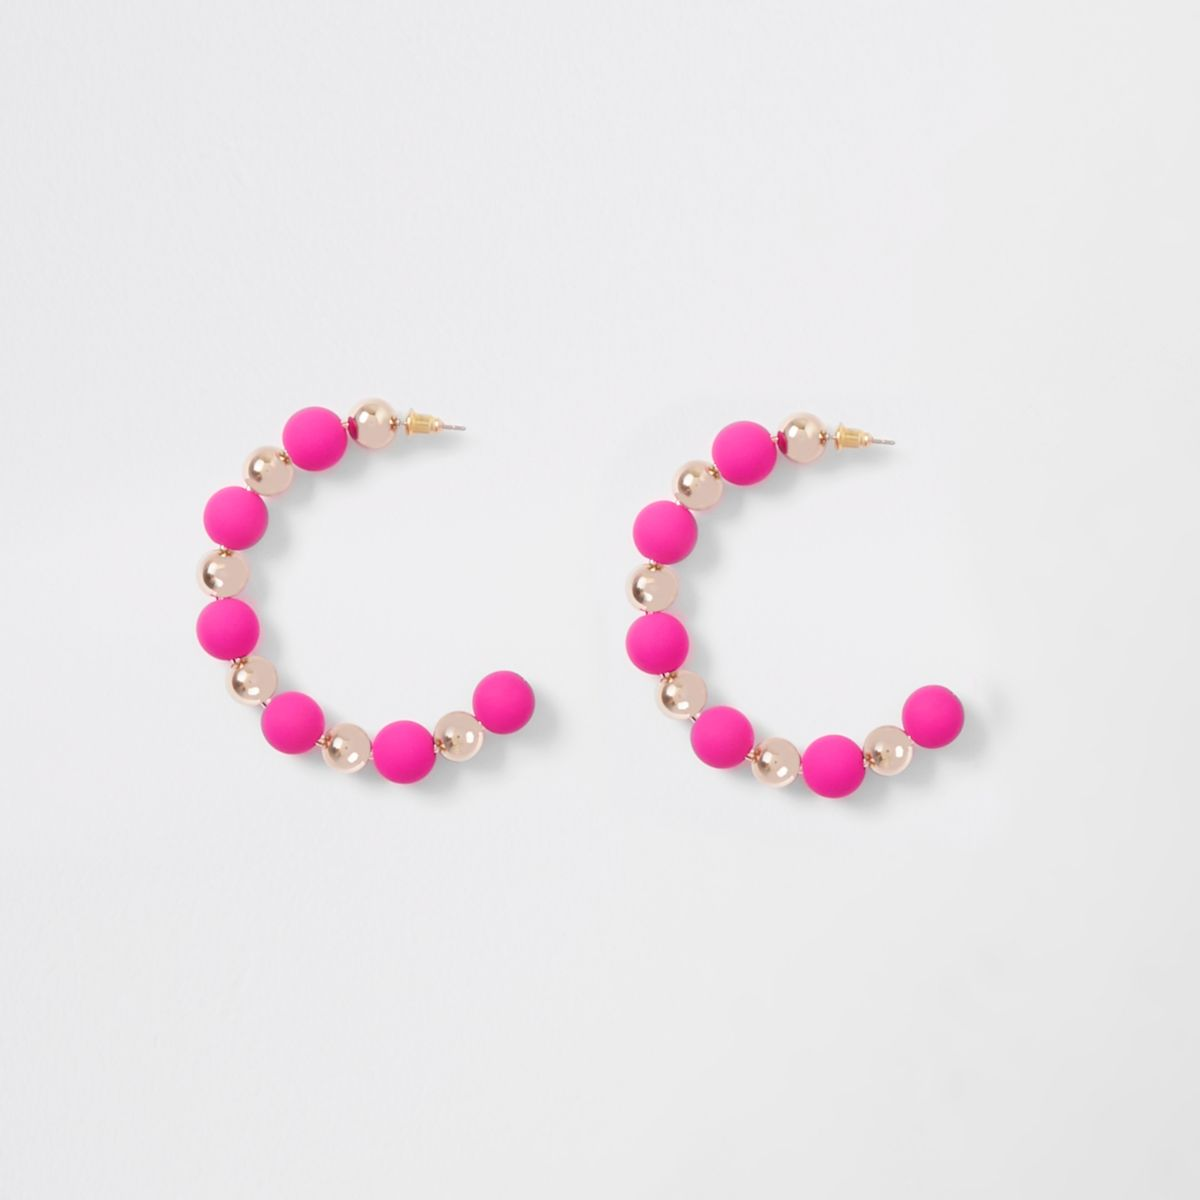 Pink rubberised ball hoop earrings